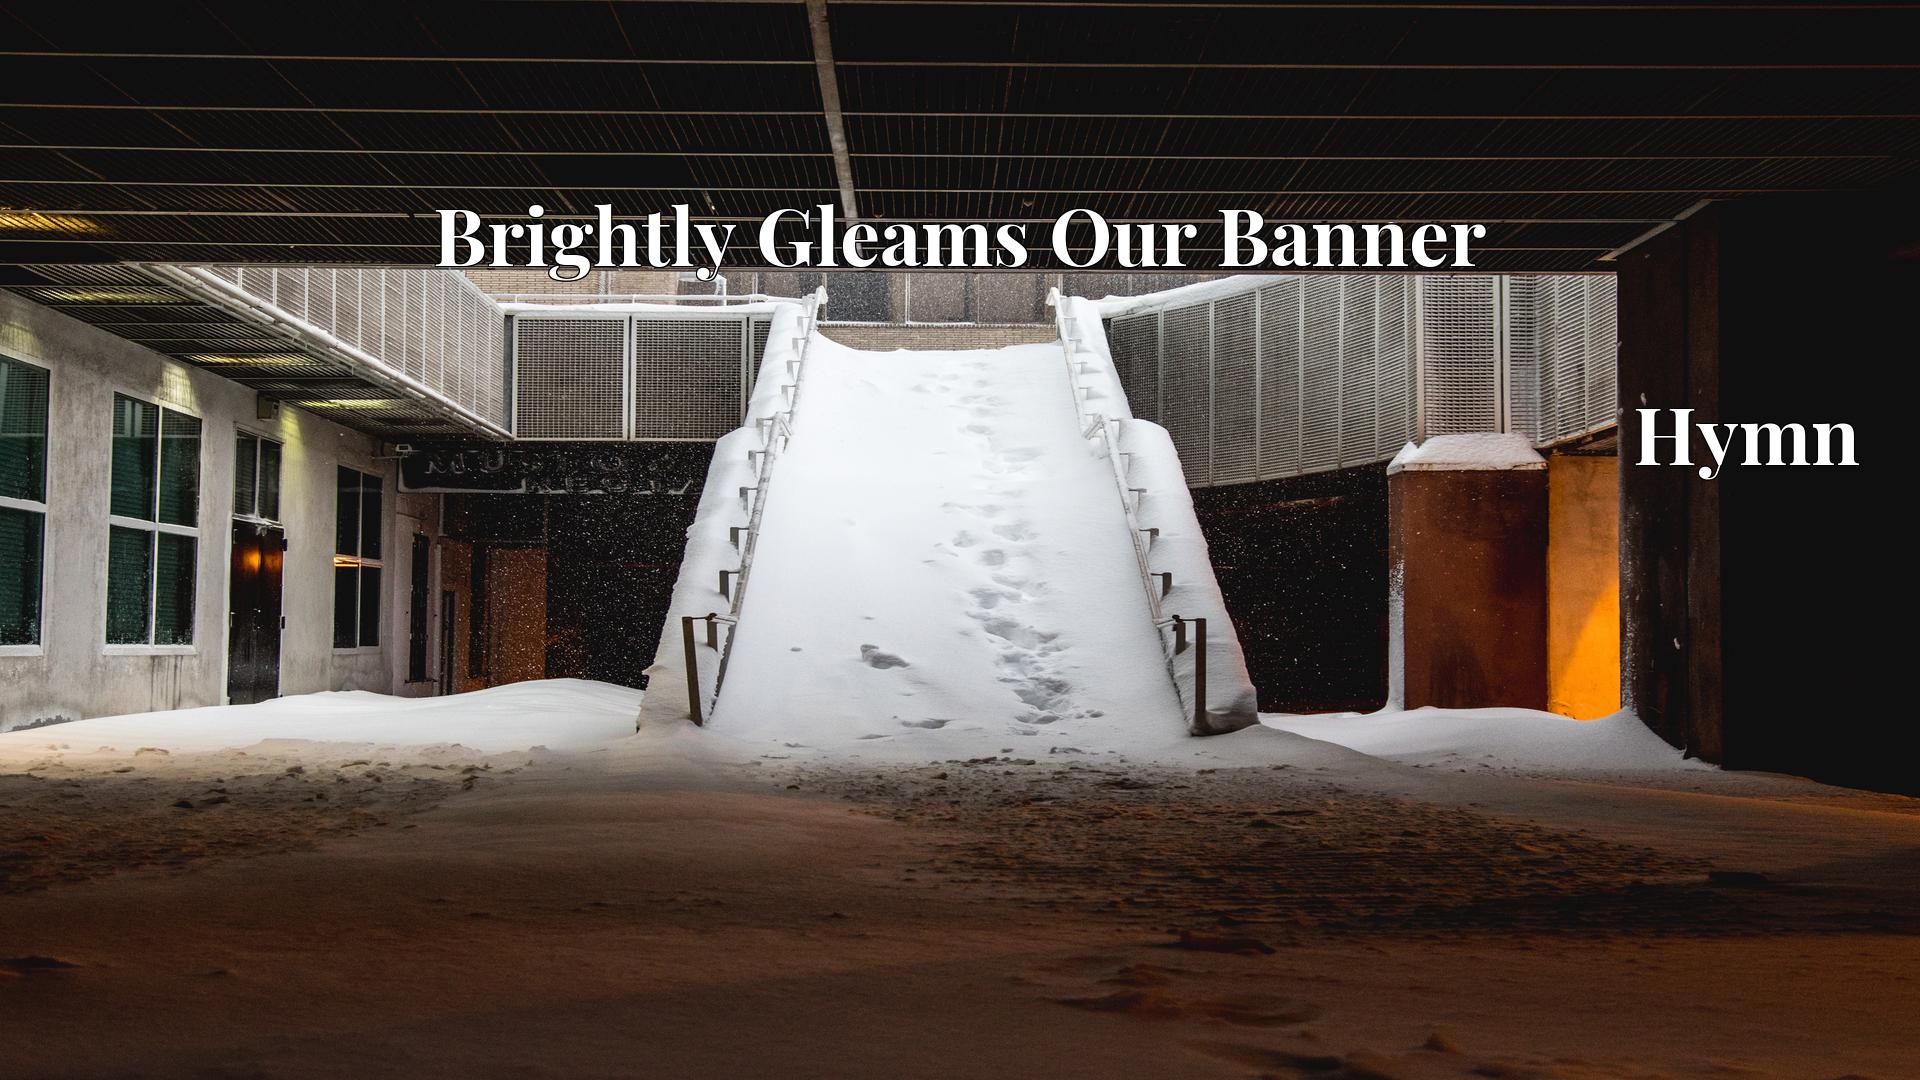 Brightly Gleams Our Banner Hymn